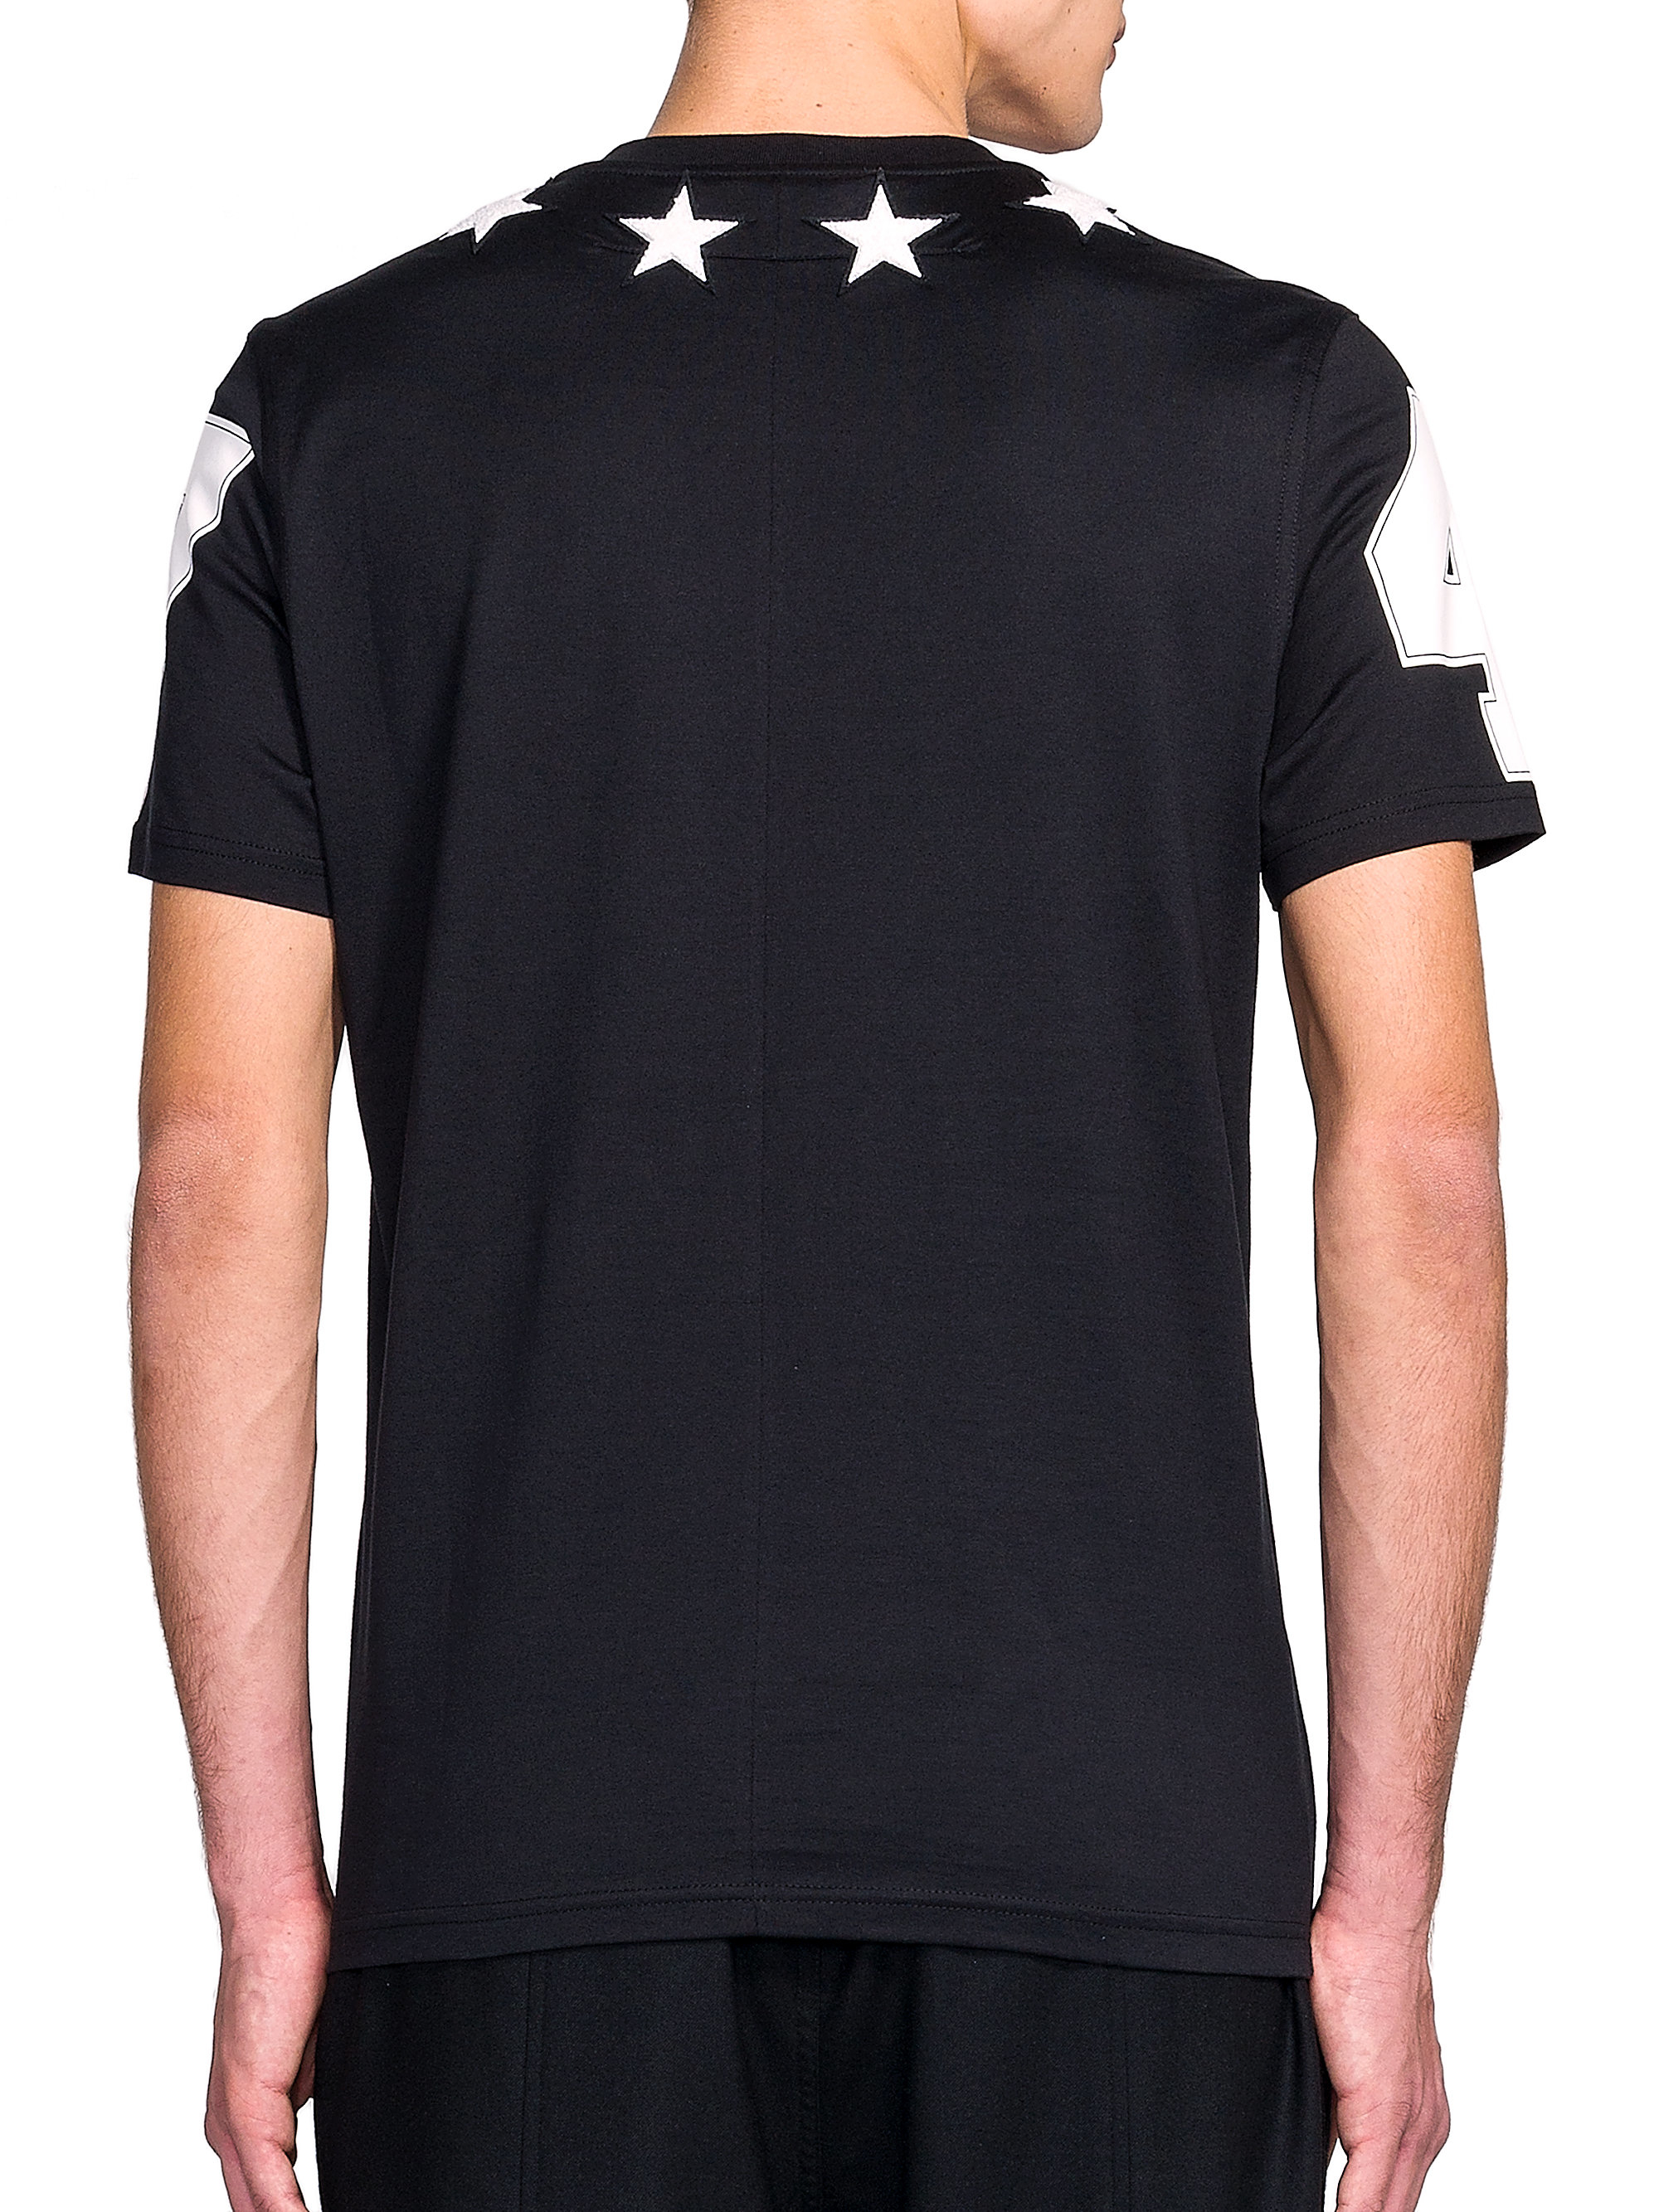 Givenchy star neck tee in black for men lyst for Givenchy 5 star shirt